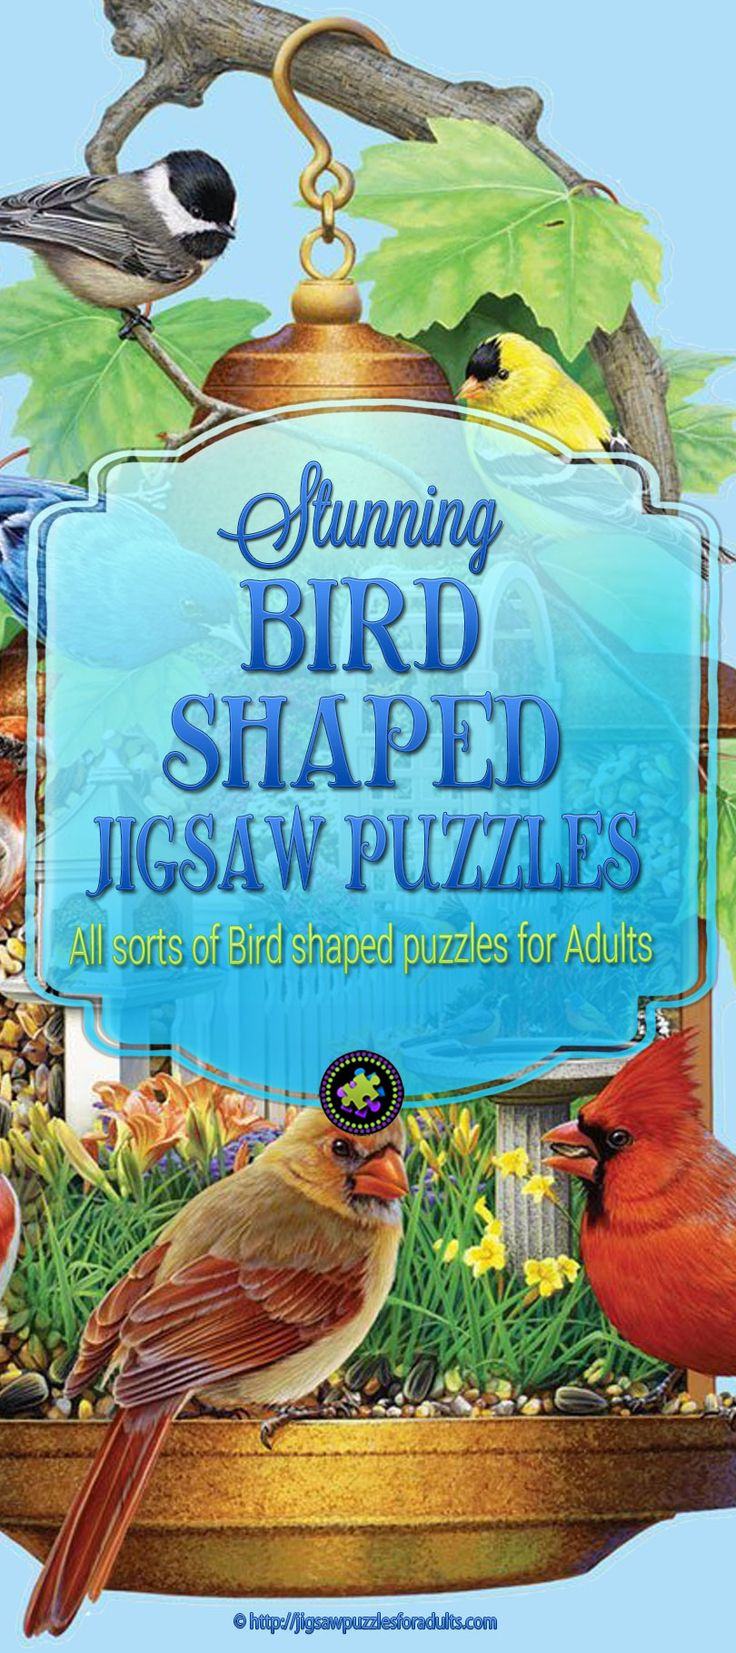 Love these bird shaped jigsaw puzzles for adults. These shaped jigsaw puzzles are not only beautiful, they're a bit challenging but loads of fun as well. So,if you love anything and everything about birds you'll find an amazing selection of bird shaped jigsaw puzzles like owl shaped puzzles, eagle shaped puzzles,hummingbirds and you will even found some shaped bird puzzles of backyard song birds.